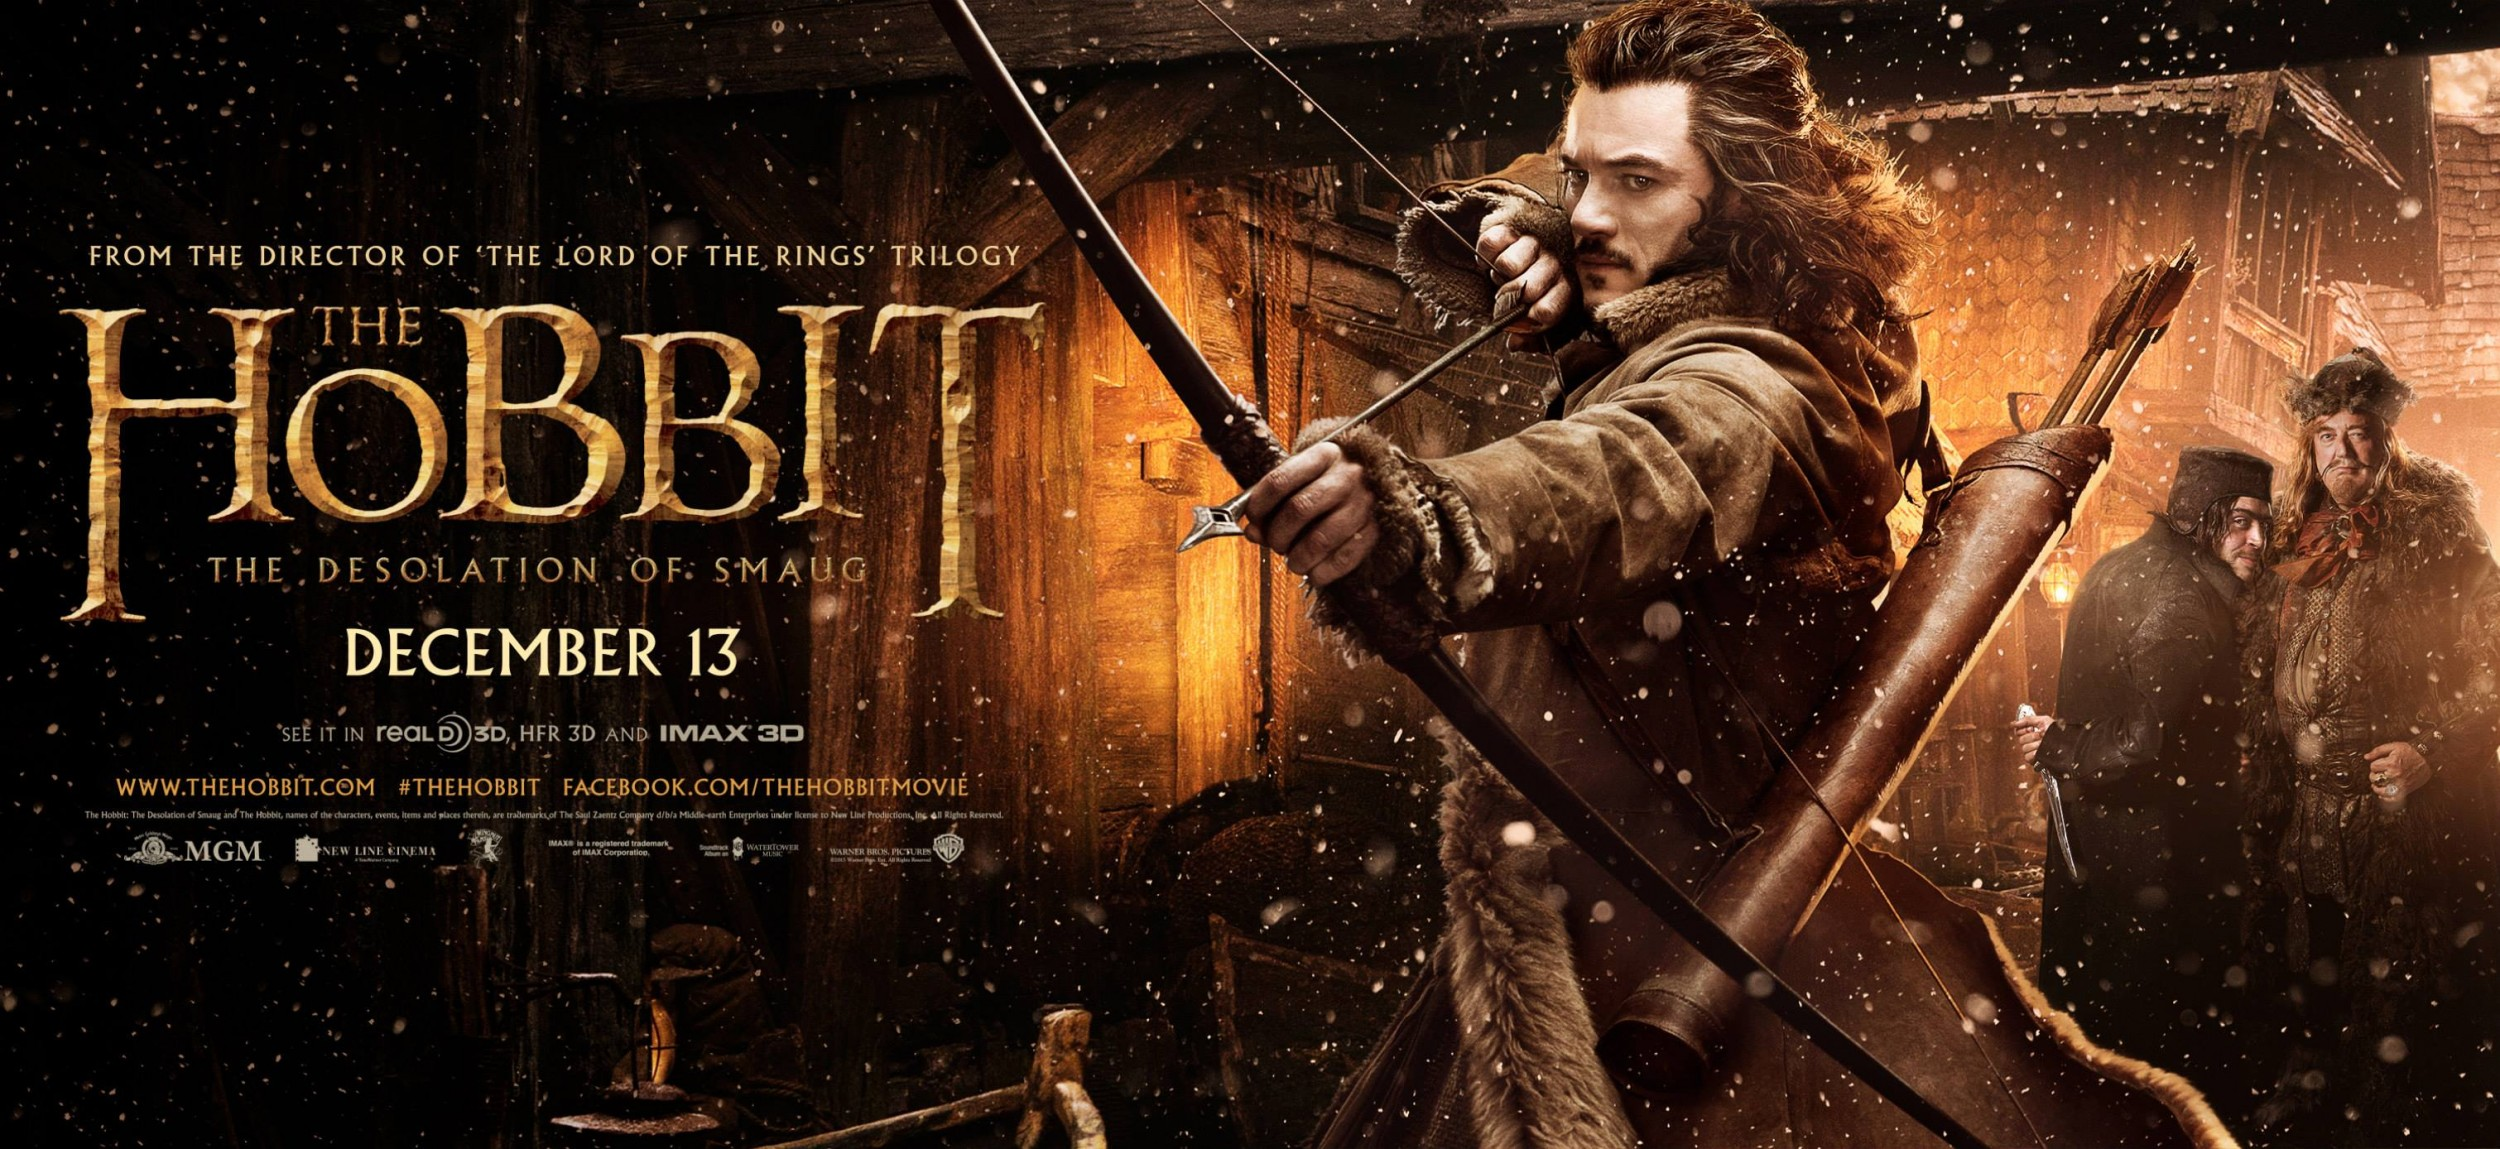 THE HOBBIT THE DESOLATION OF SMAUG-Official Poster Banner PROMO BANNER-30SETEMBRO2013-01